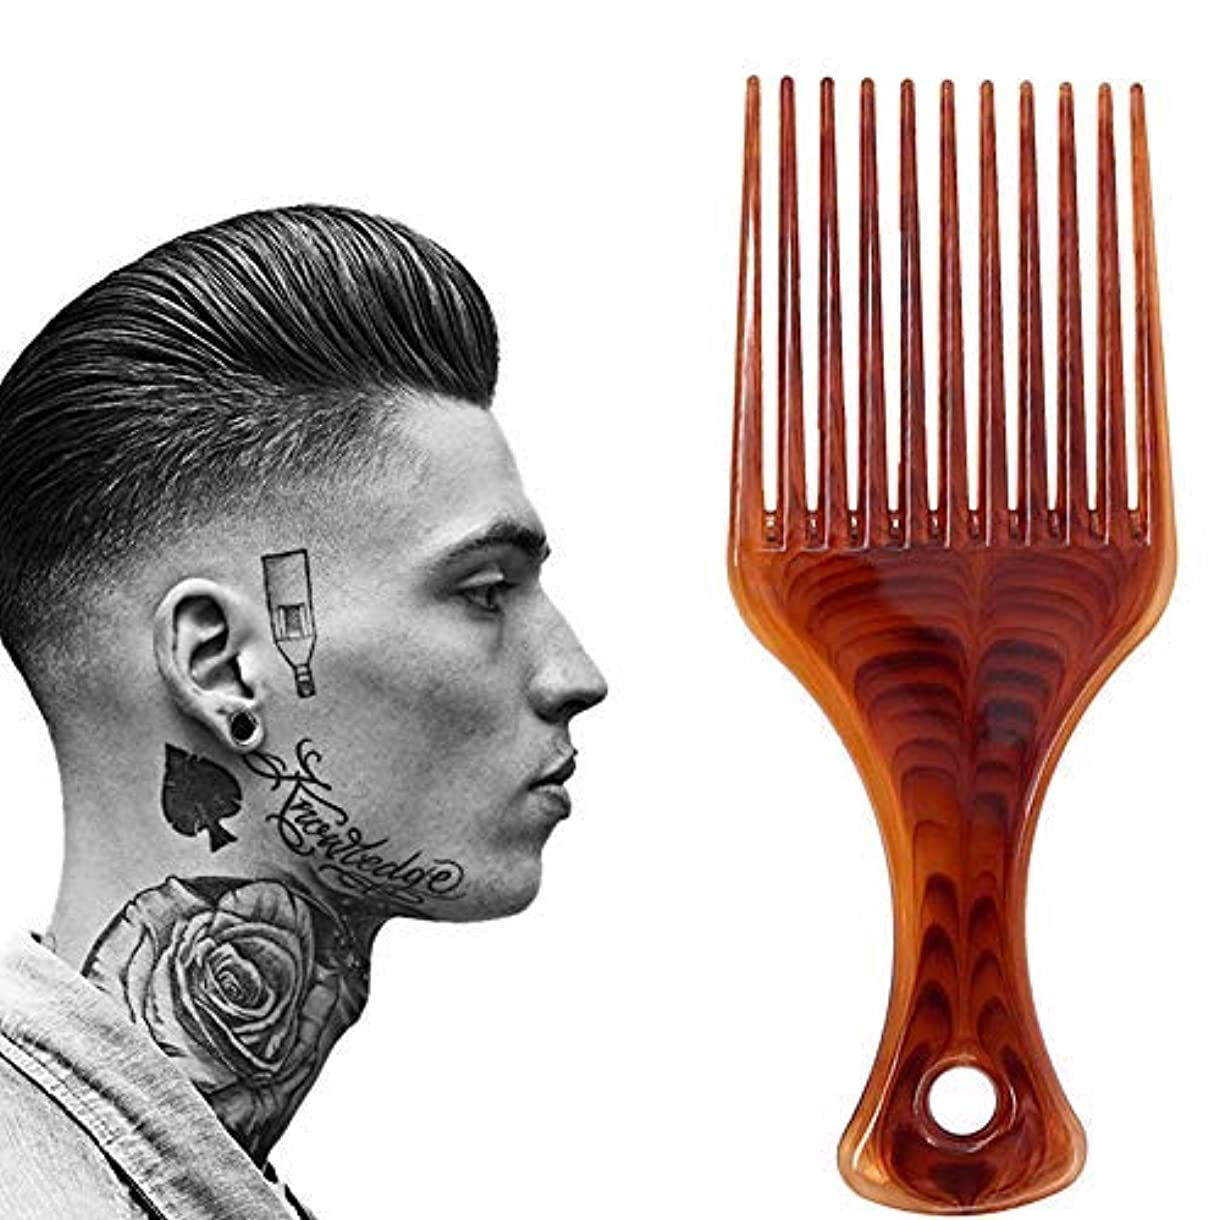 シュガーダム汚すLightweight Afro Comb,Amber Afro Pick Hair Comb,Plastic Hair Brushes for Man & Woman Hairdressing Styling [並行輸入品]